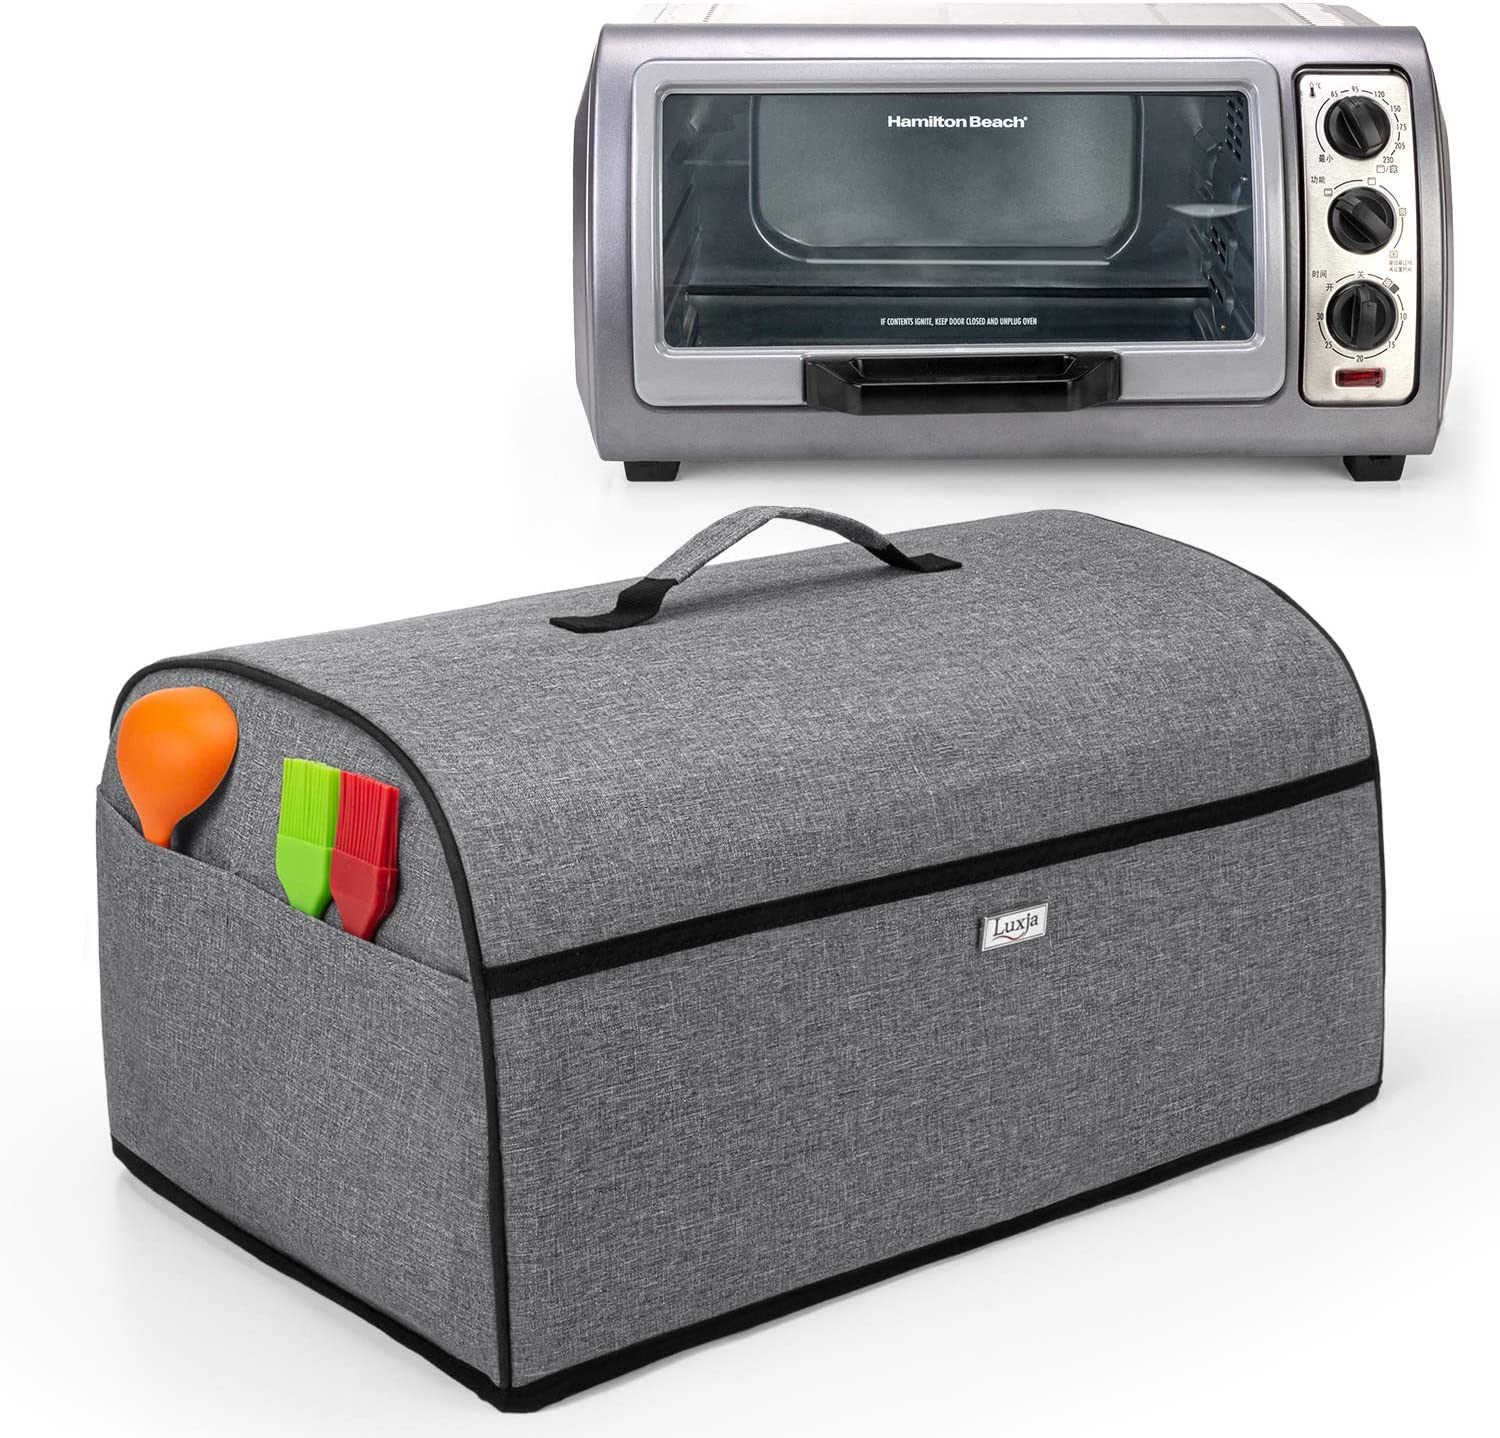 Luxja Toaster Oven Cover Compatible with Hamilton Beach 6-Slice Toaster Oven, Gray